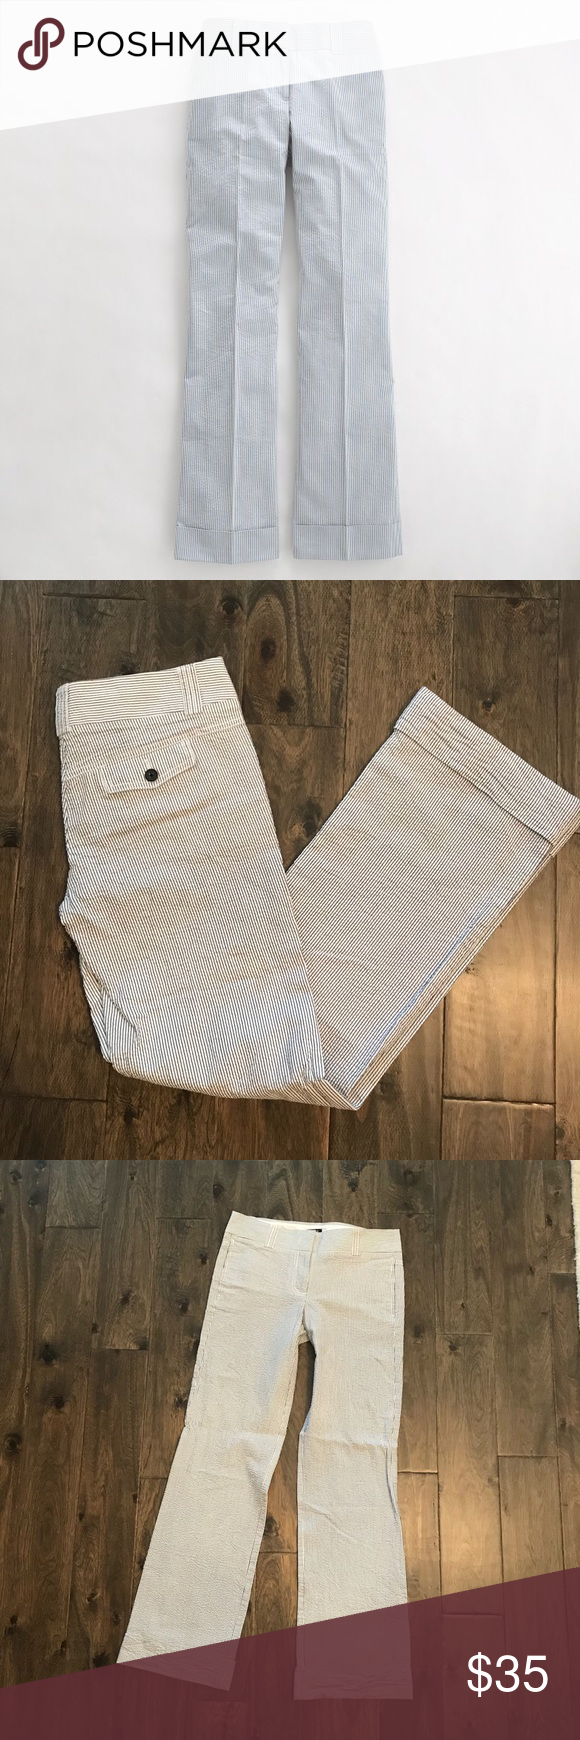 J. Crew Factory City Fit Cuffed Seersucker Pants Like new- never worn. Very light and comfy fabric. 100% cotton. Smoke free home. J. Crew Factory Pants Trousers